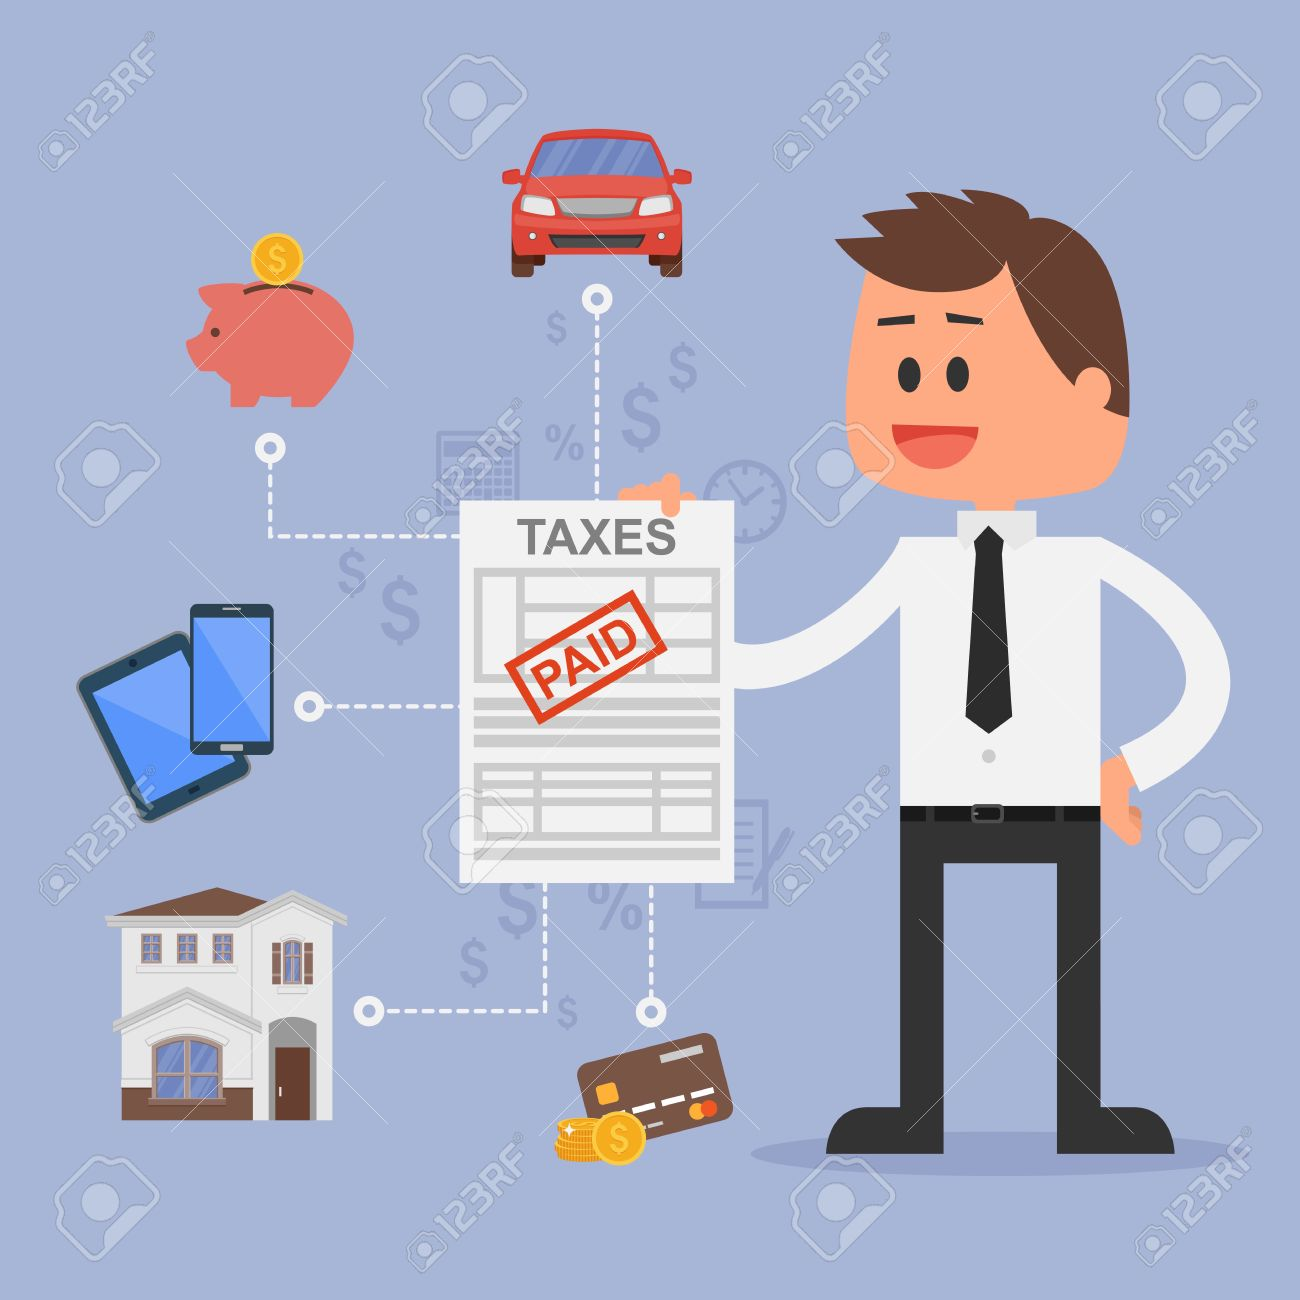 Cartoon Vector Illustration For Financial Management And Taxes.